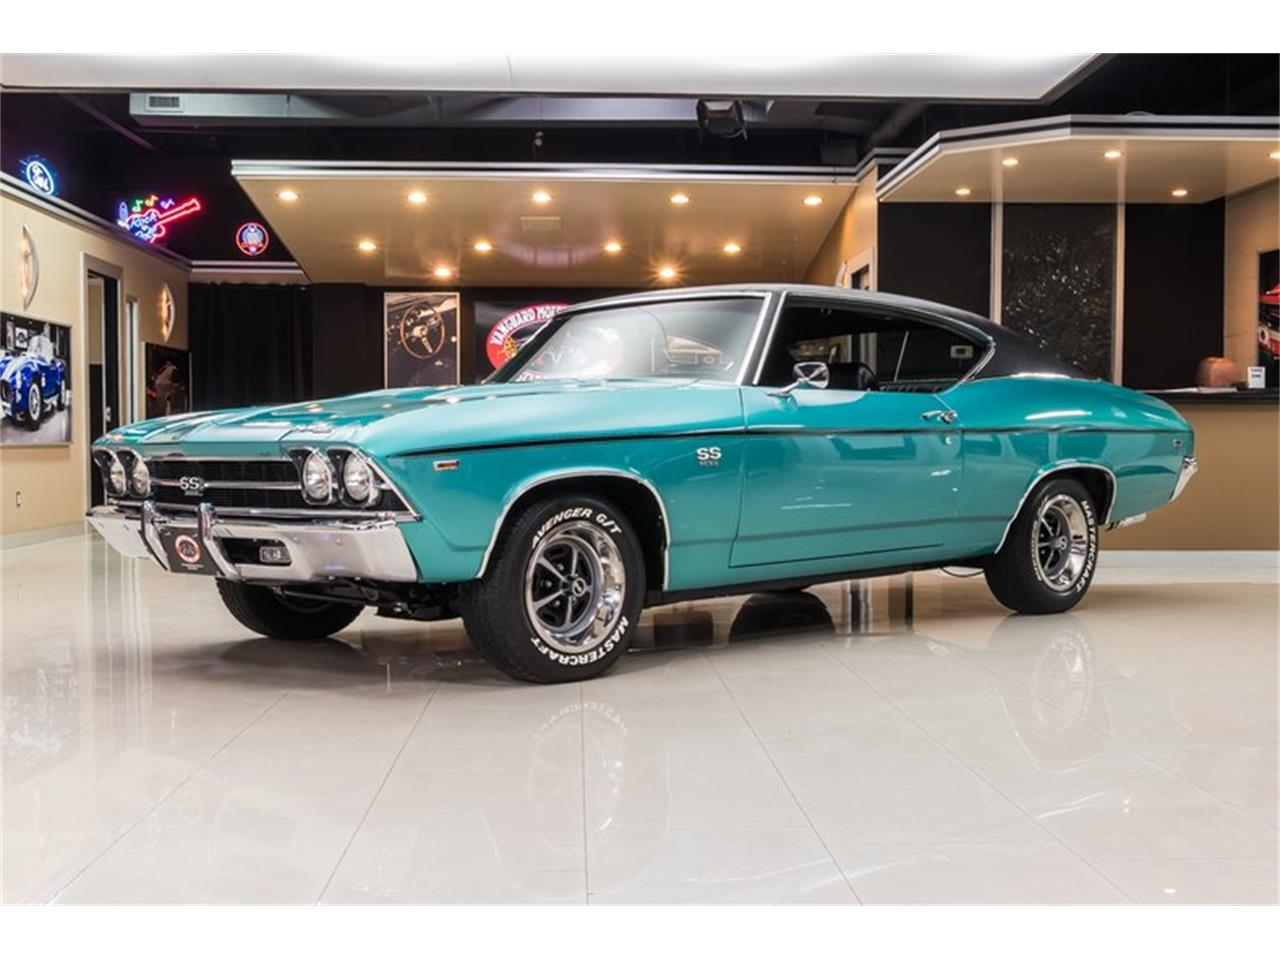 For Sale: 1969 Chevrolet Chevelle in Plymouth, Michigan